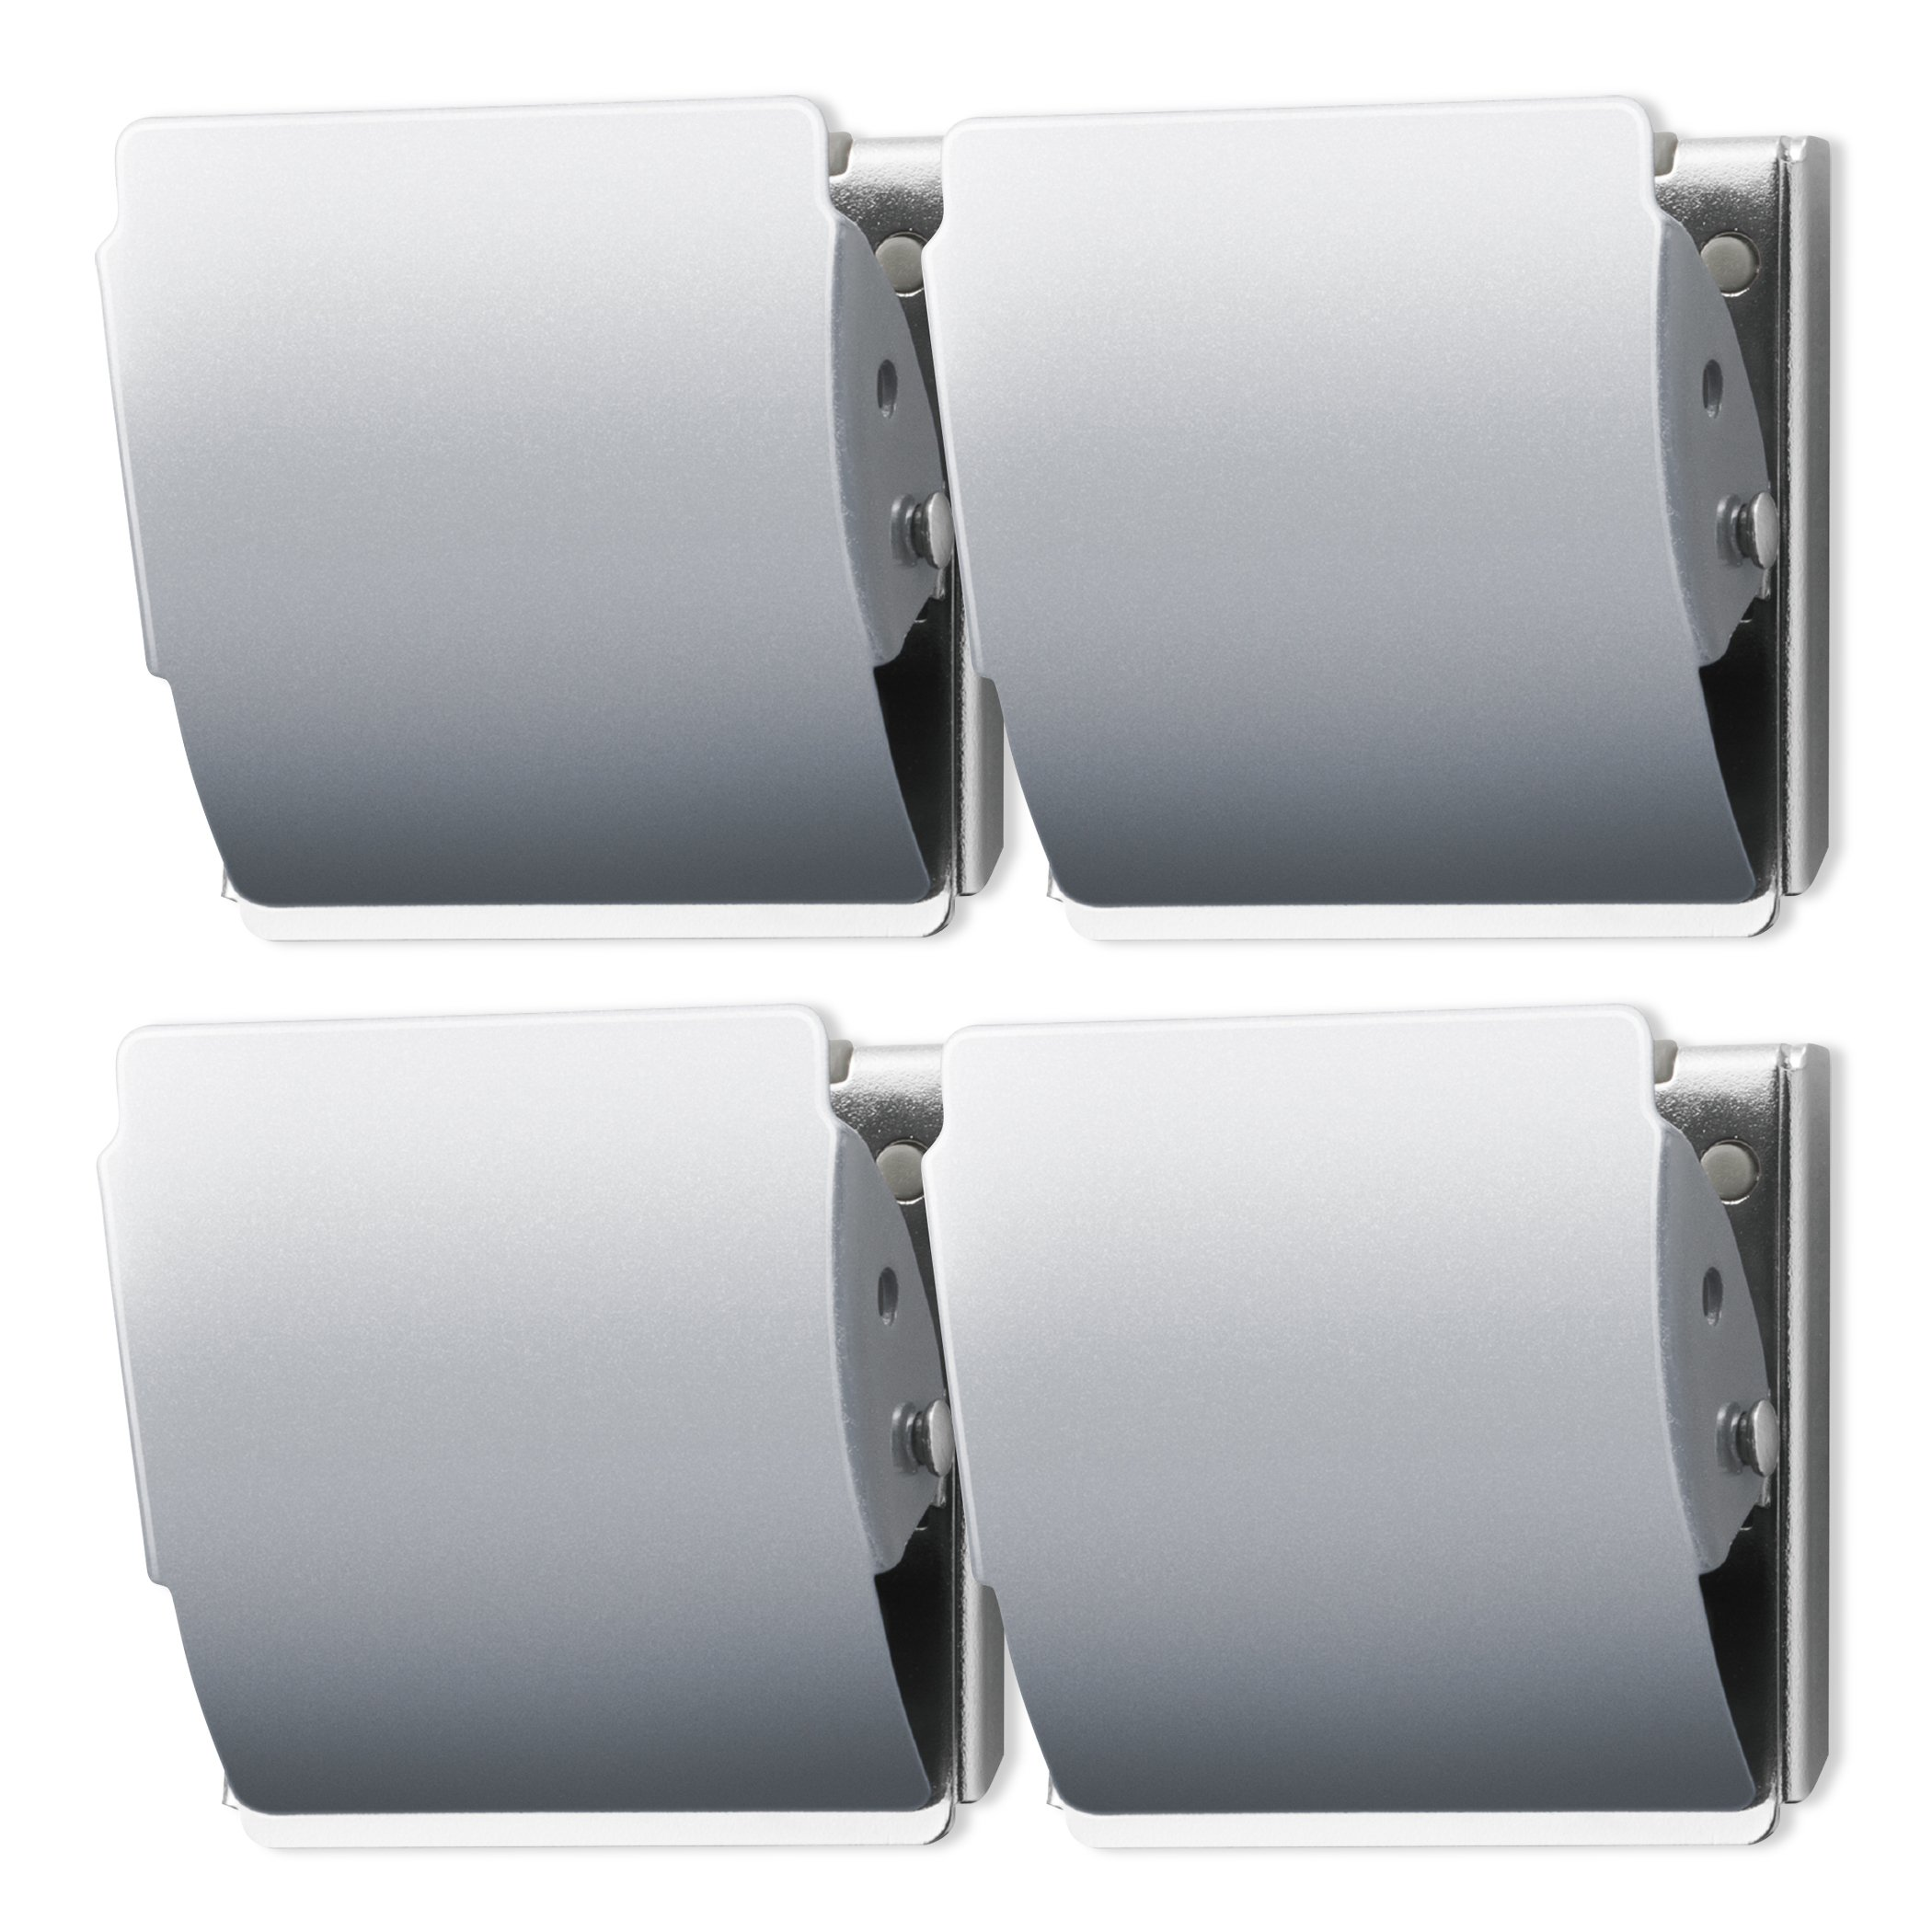 Plus Super Strong Magnetic Clips, 4 Pack (60002)